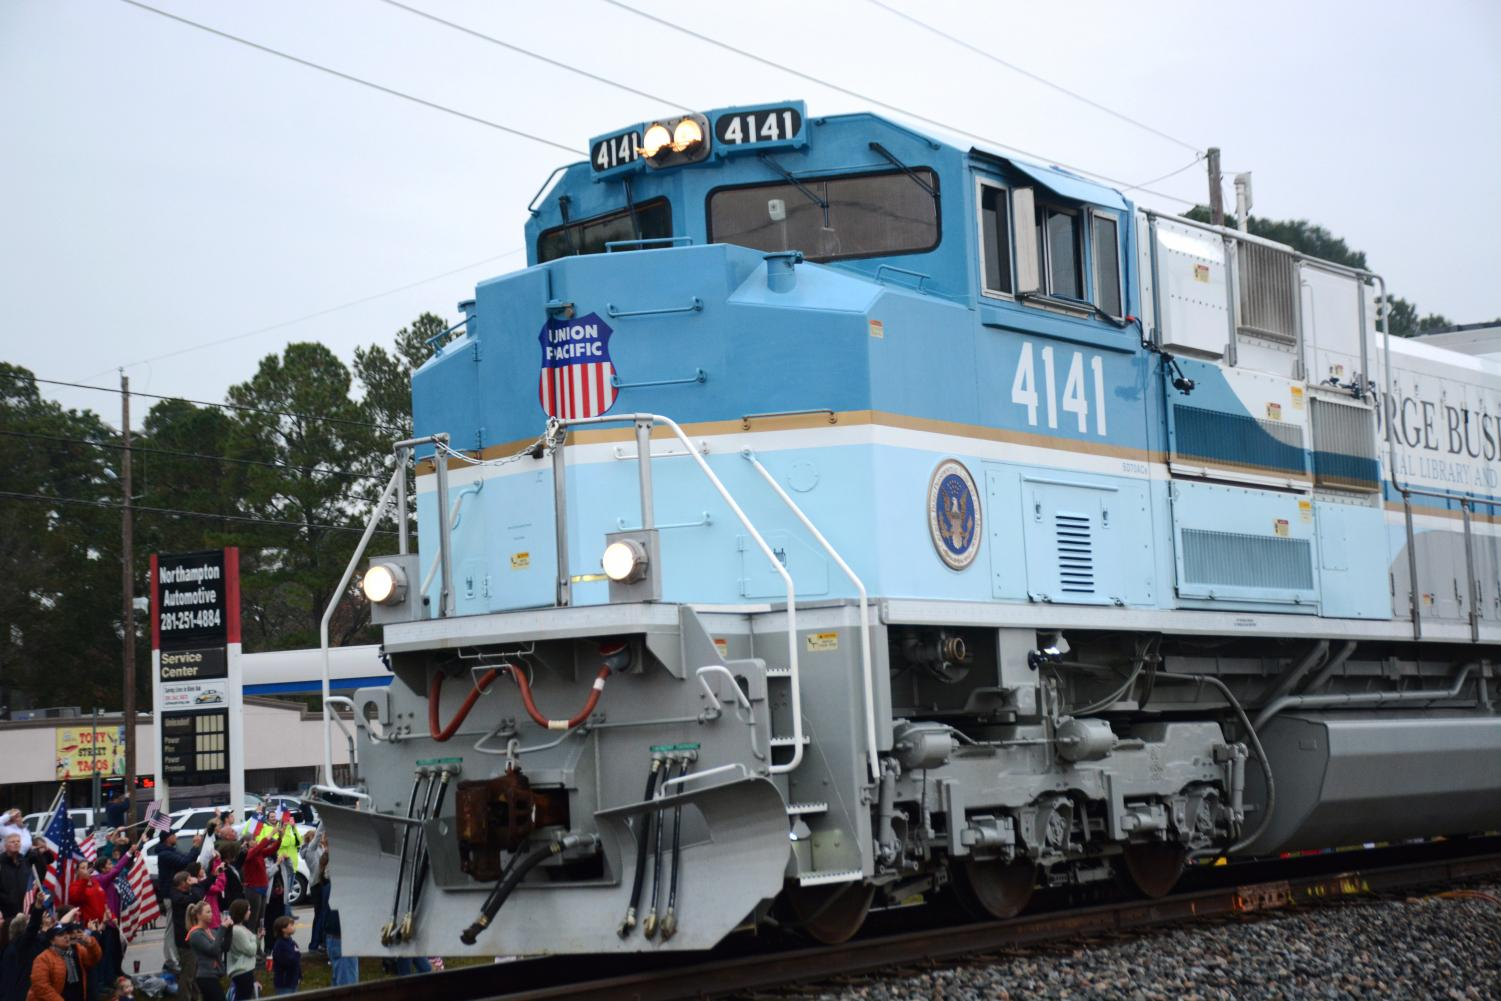 The special Bush 4141 Train passes by Klein Oak on Dec. 6 on its way to College Station.